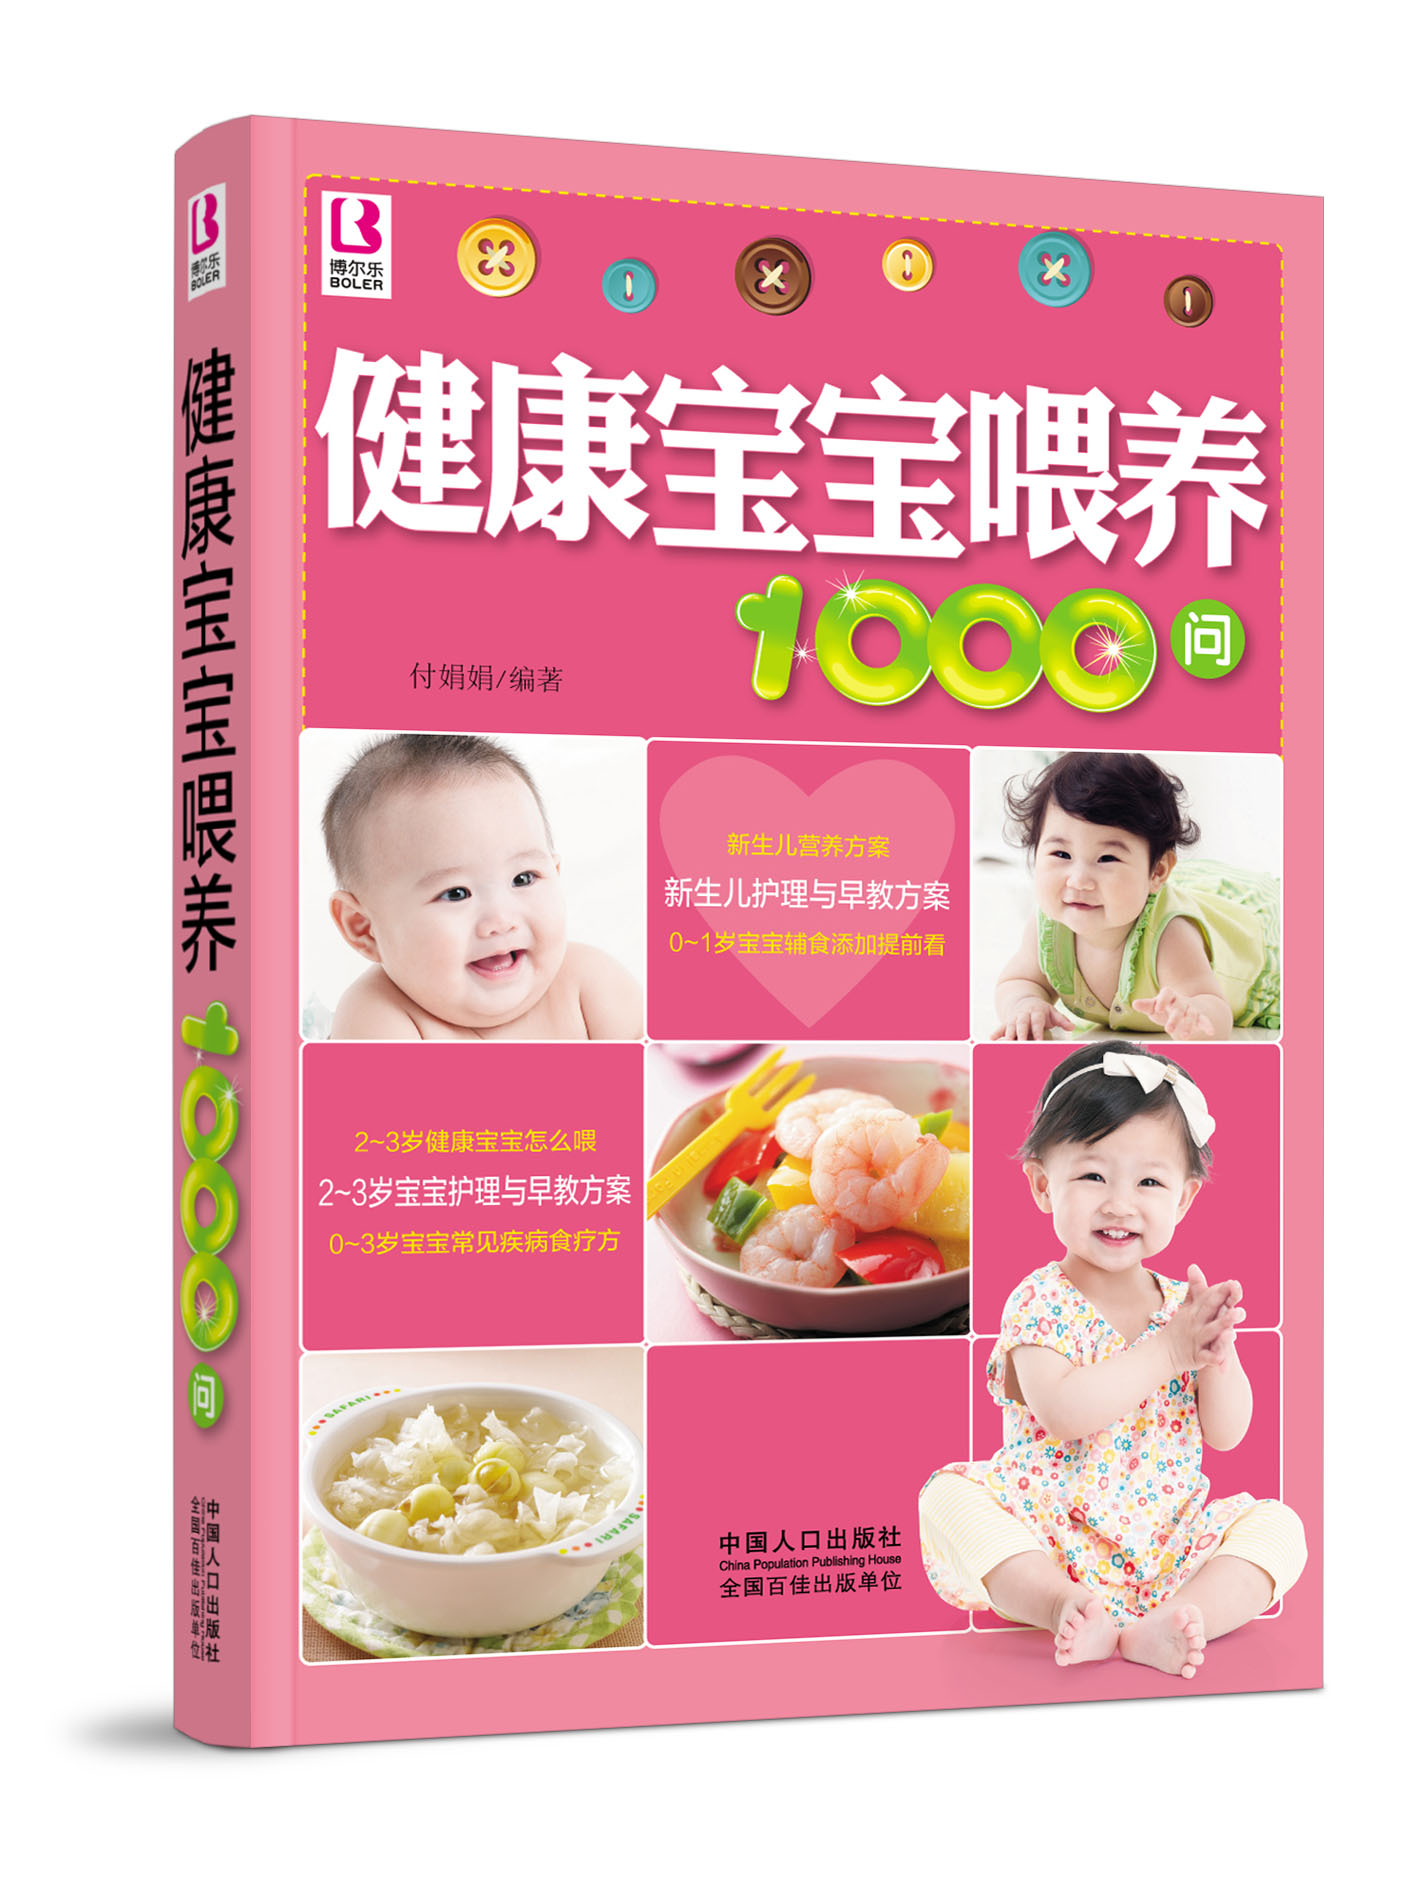 China feeding baby food china feeding baby food shopping guide at get quotations free shipping 1000 ask children healthy baby feeding baby food supplement book 0 1 forumfinder Choice Image